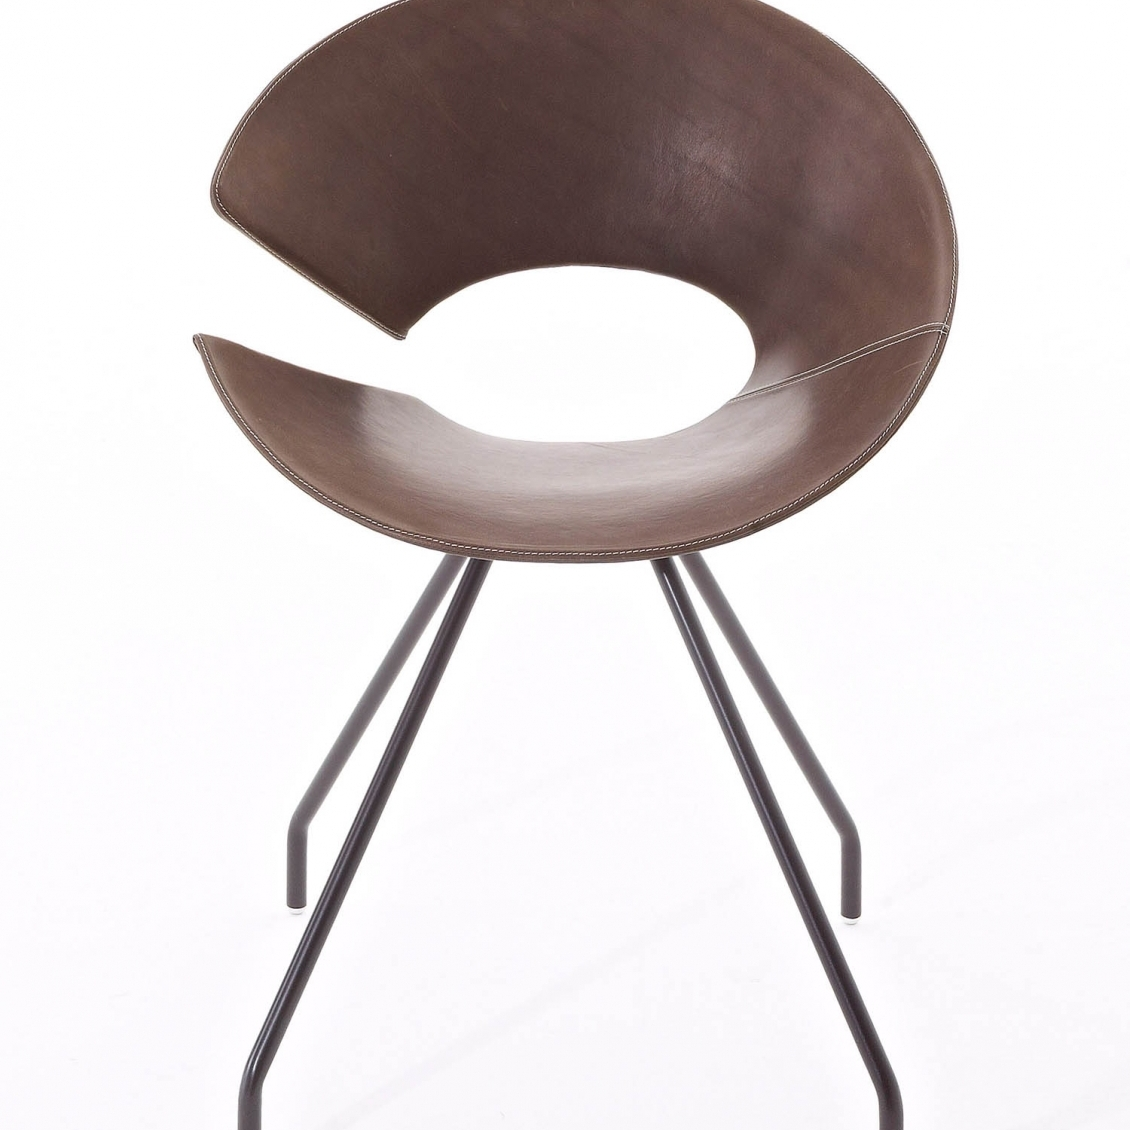 Diva chair whit varnished steel frame, coffie bown, vintage leather